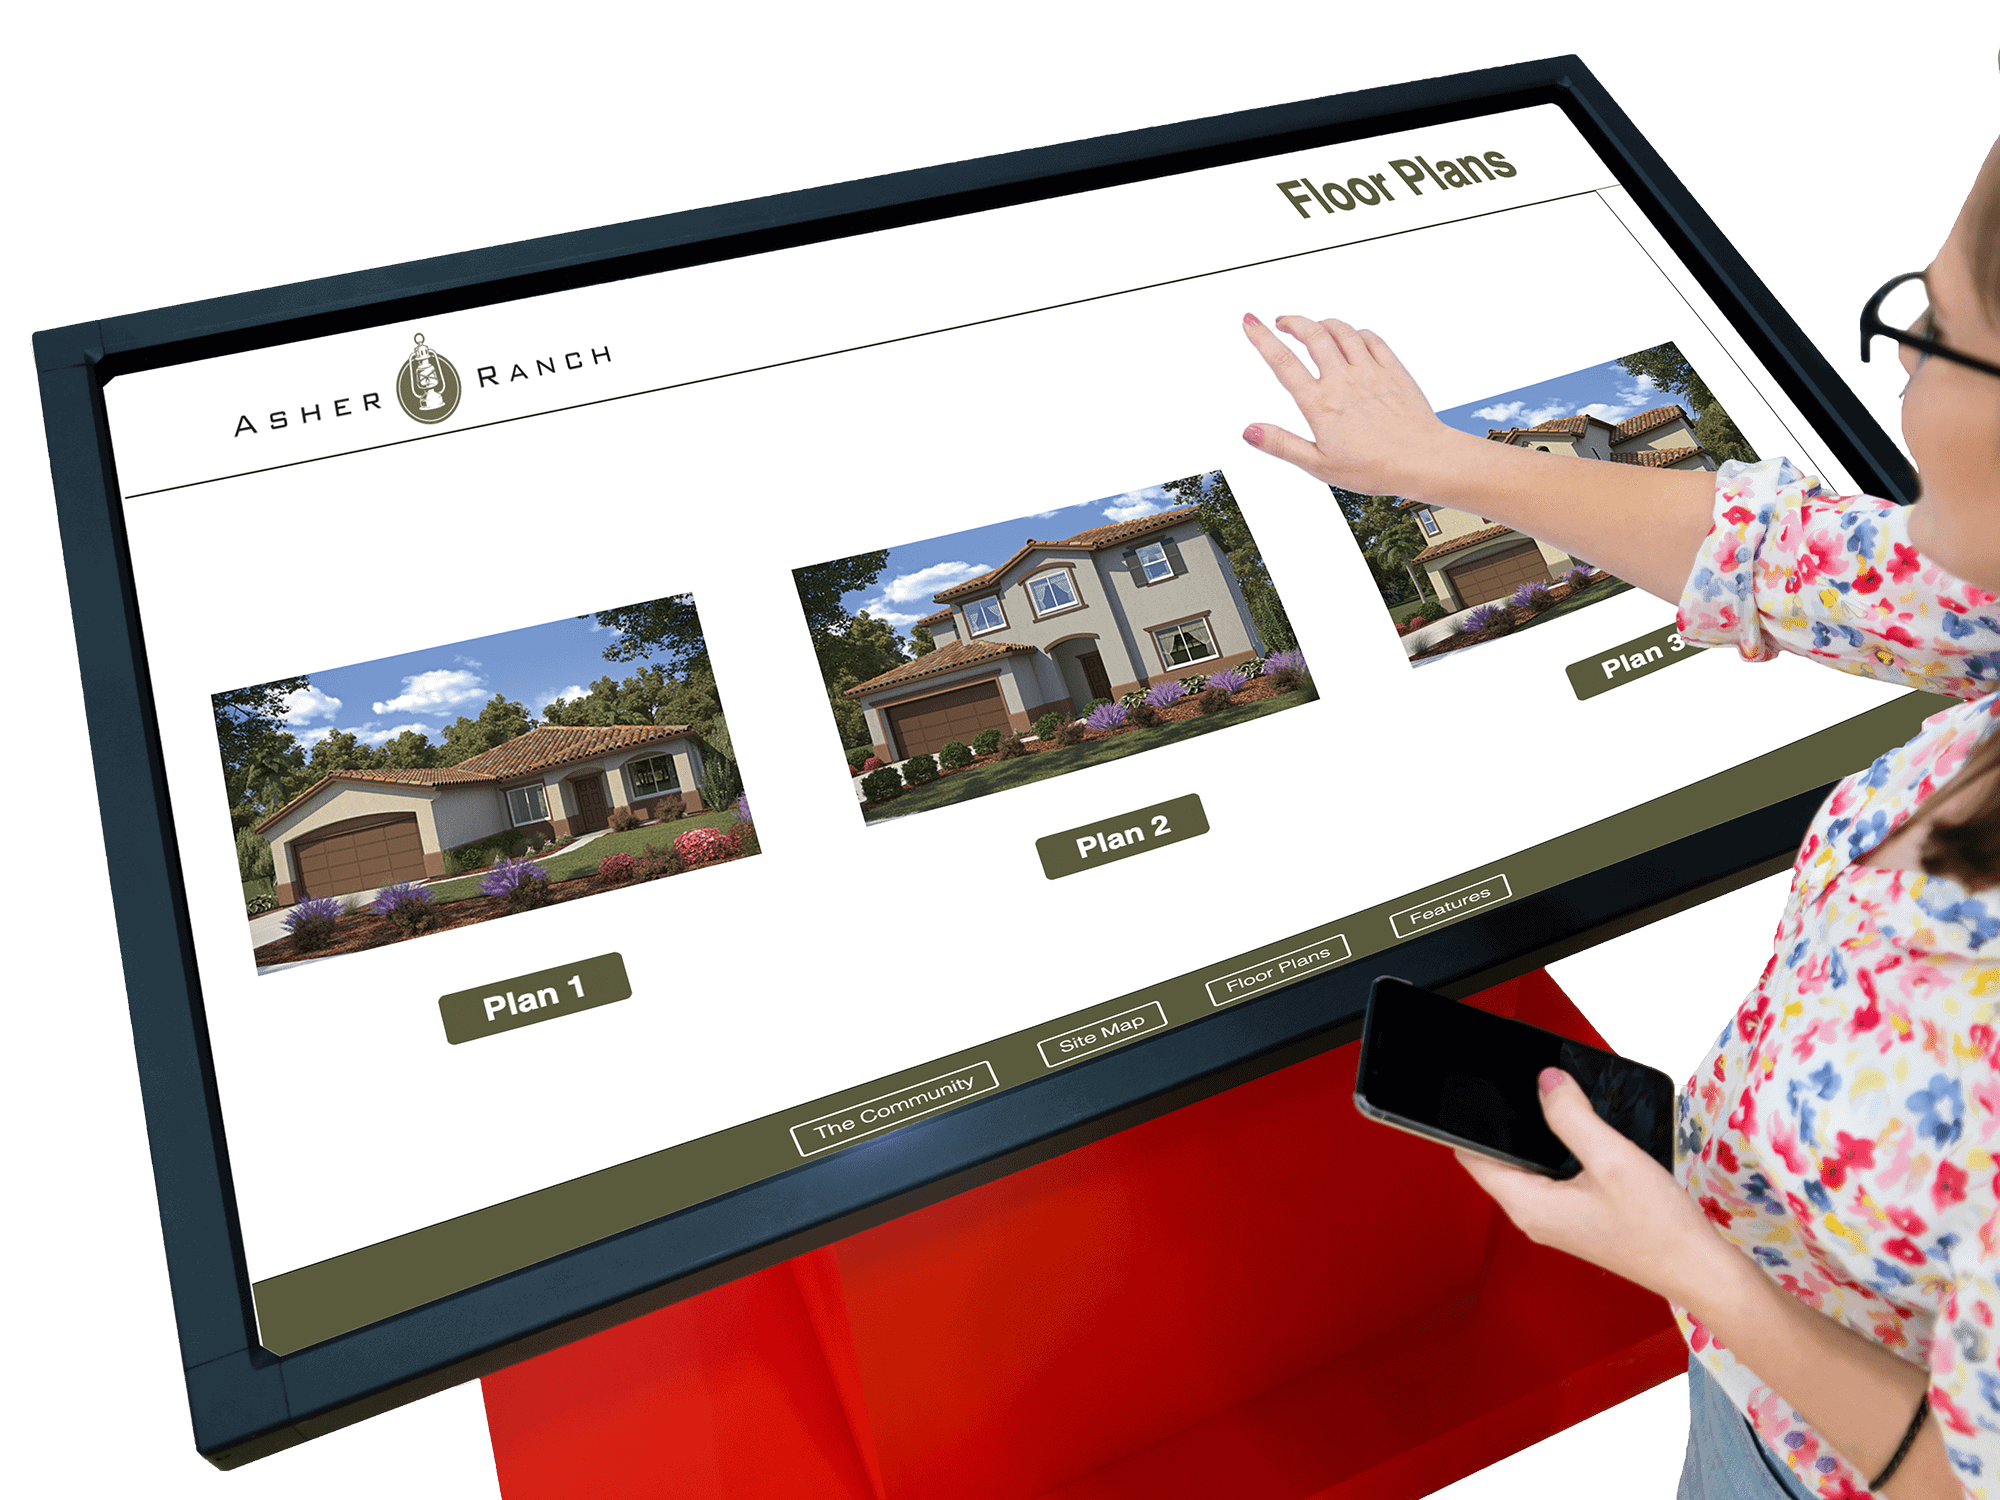 interactive sales office - Asher ranch